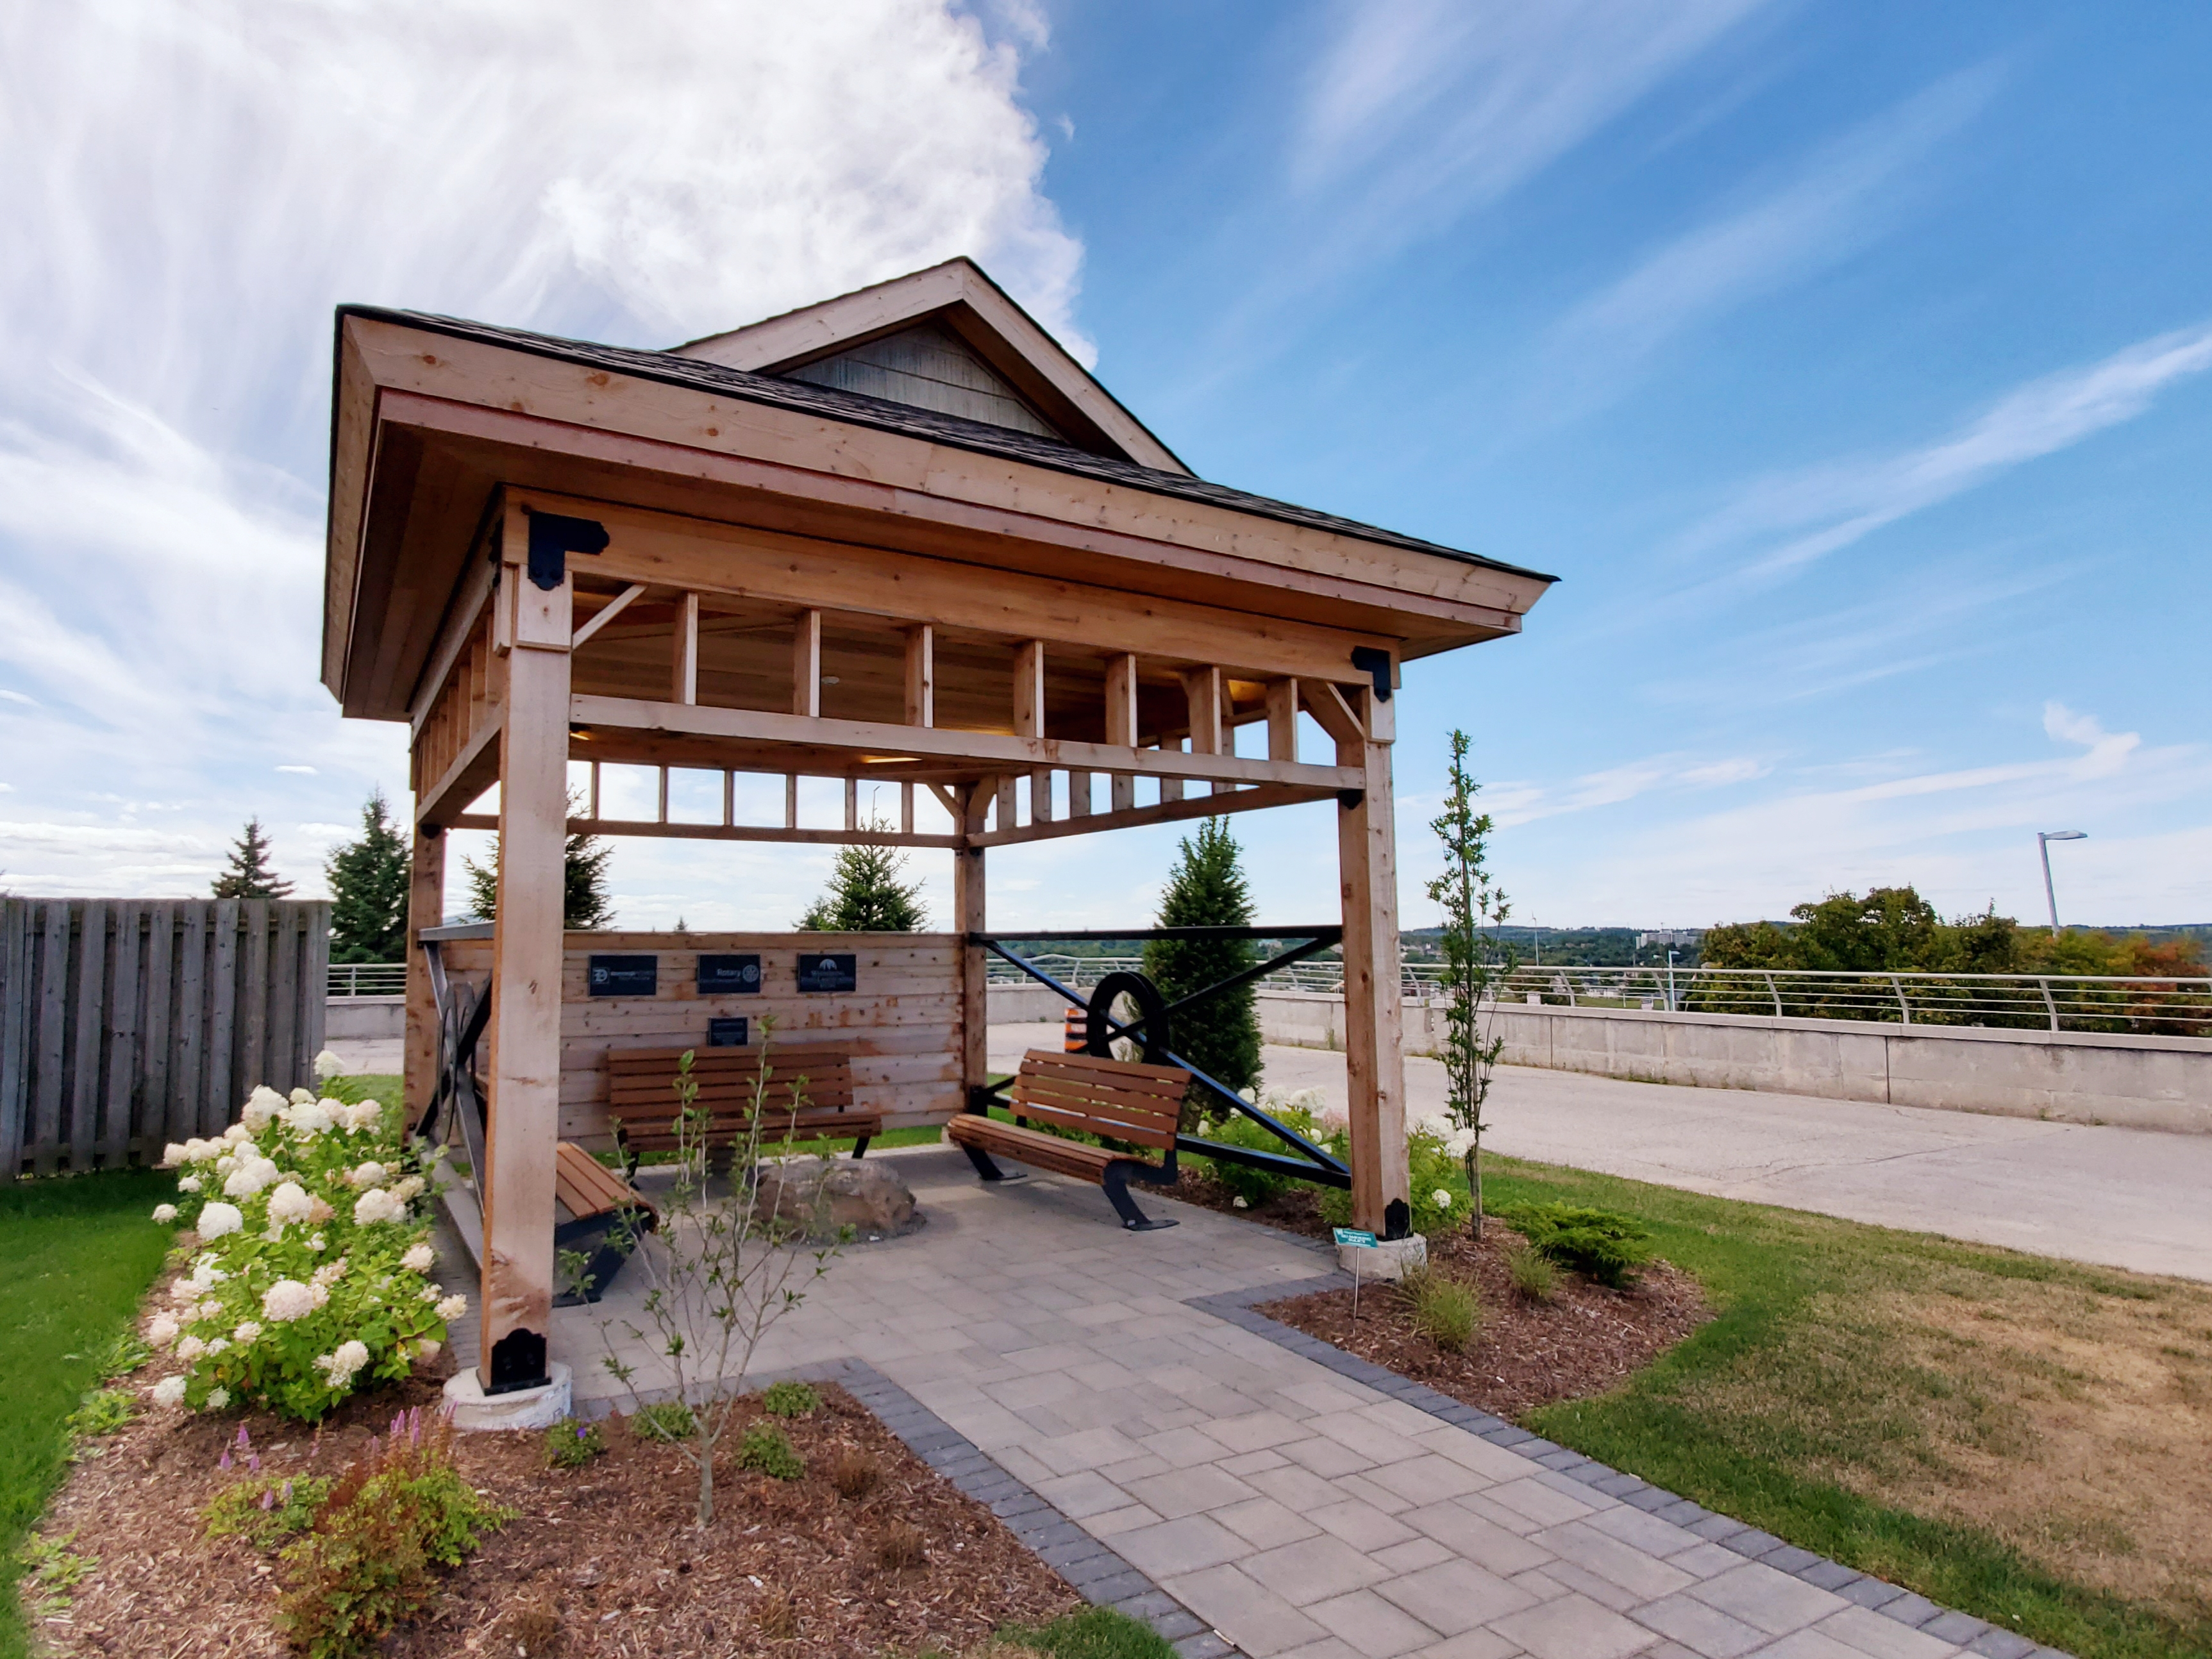 Pavilion at Headwaters Hospital